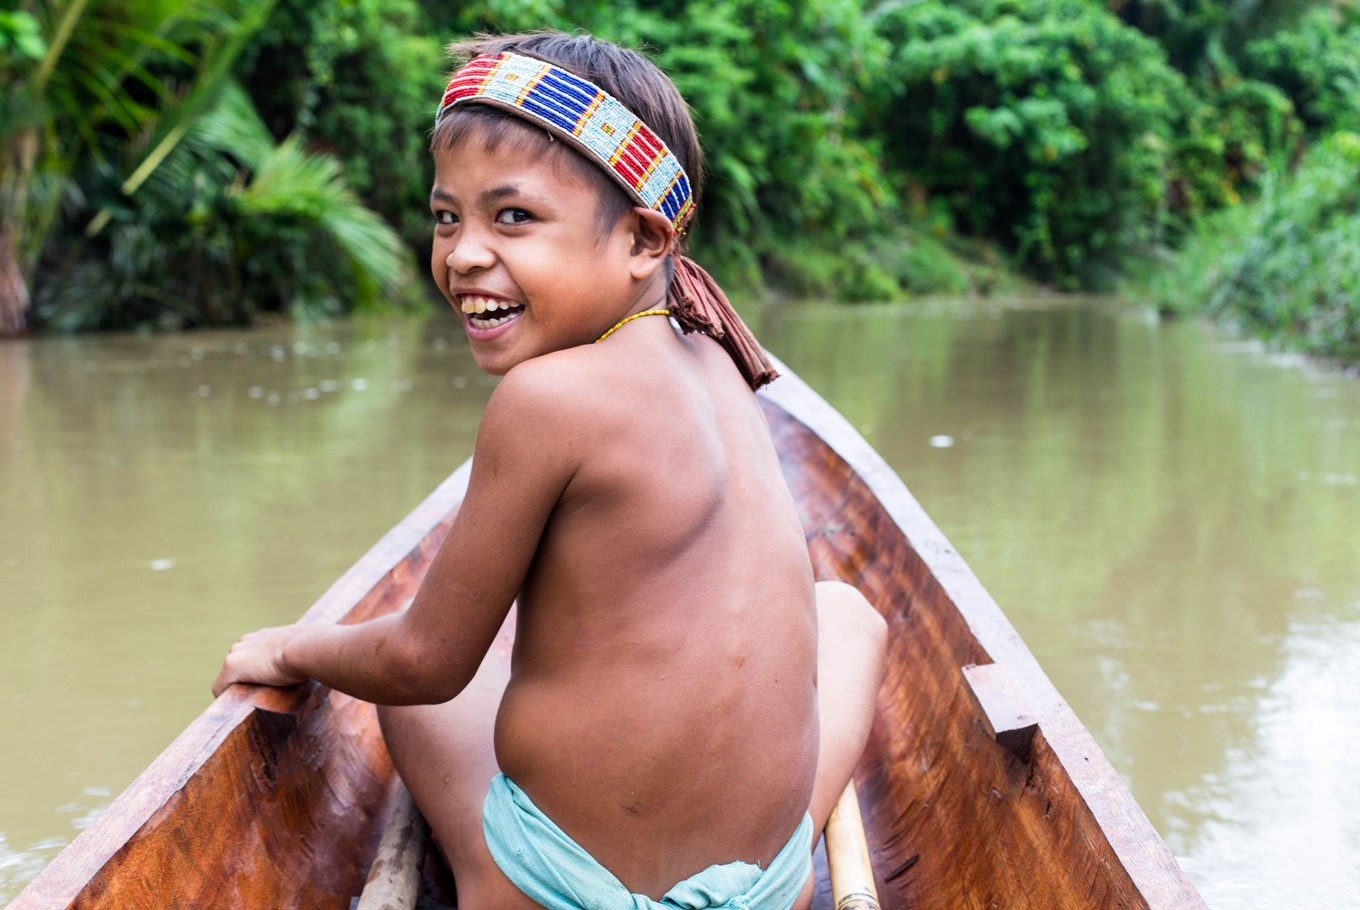 By Mentawai for Mentawai: How community-driven education can save a tribe